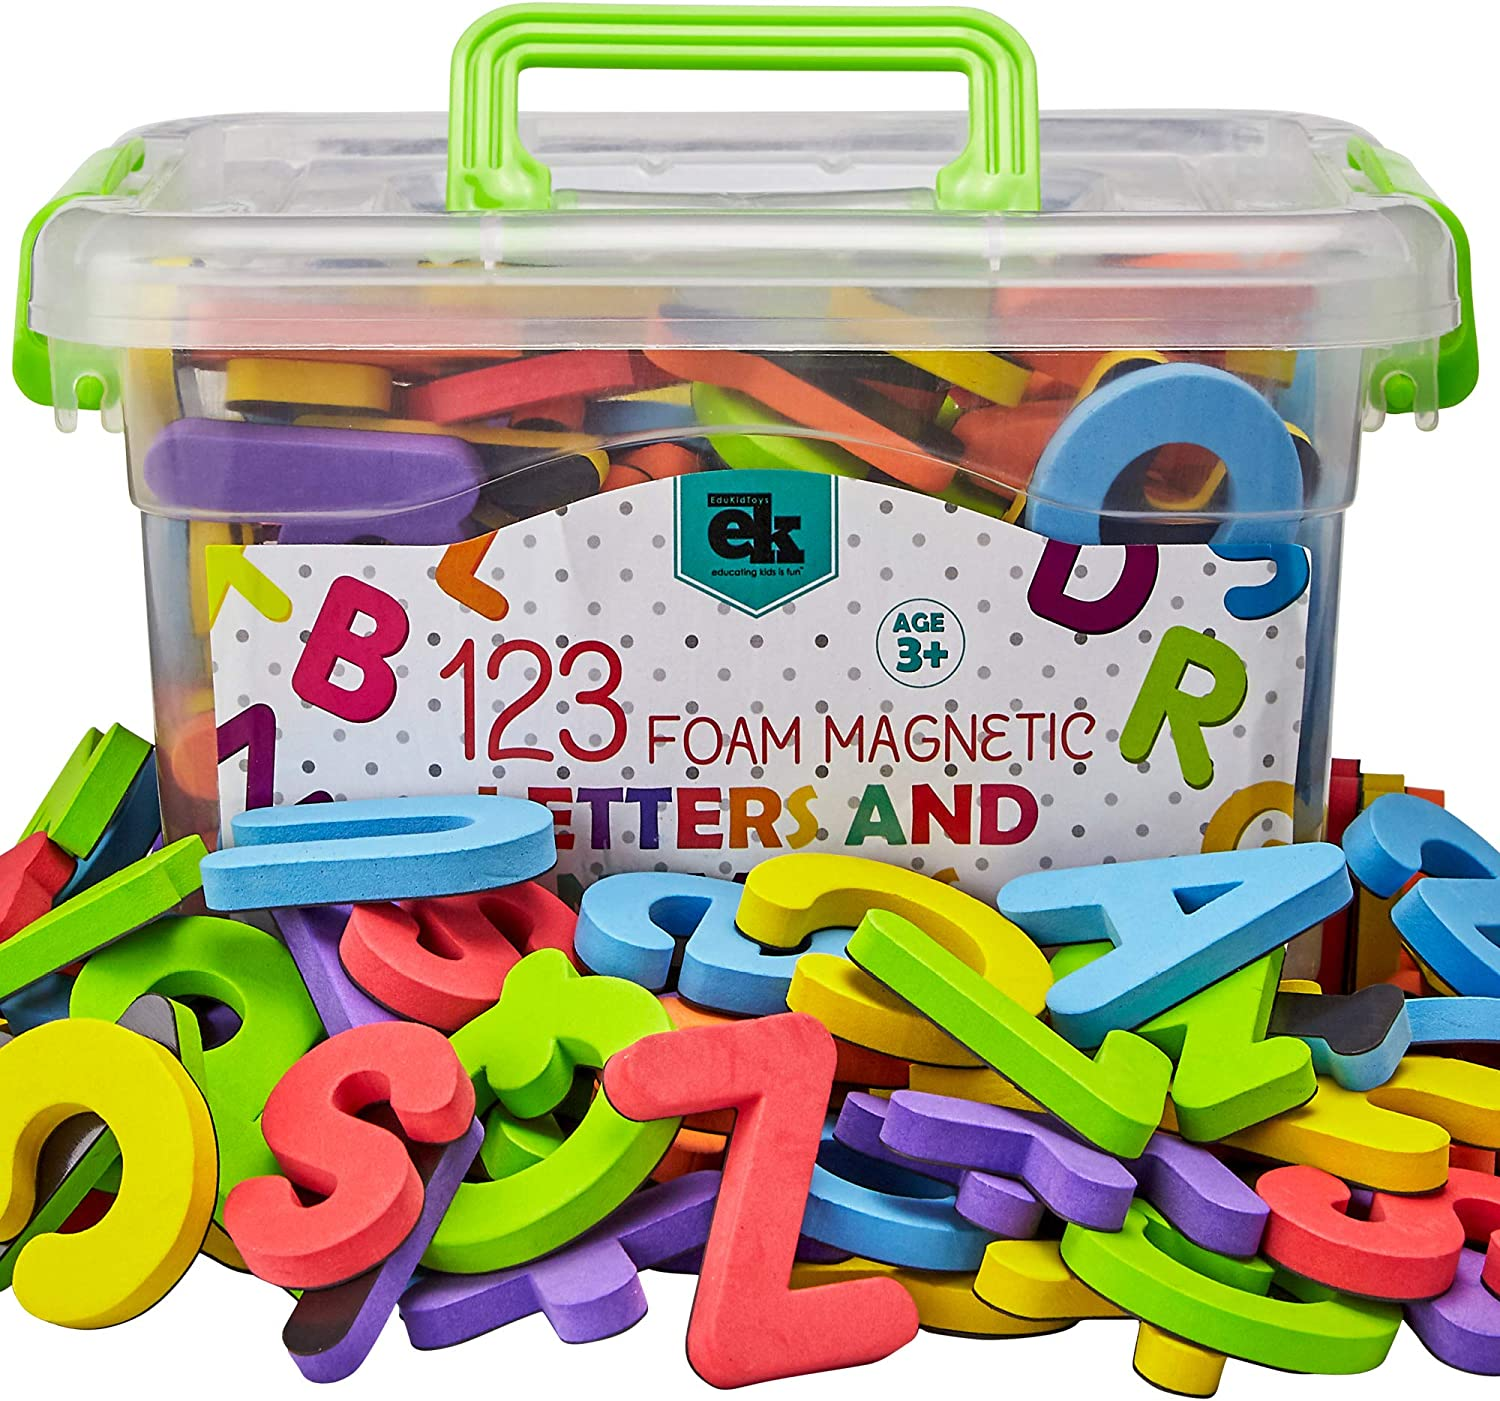 Magnetic Foam Letters and Numbers Premium Quality ABC, 123 Foam Alphabet Magnets | Educational Toy for Preschool Learning, Spelling, Counting in Canister